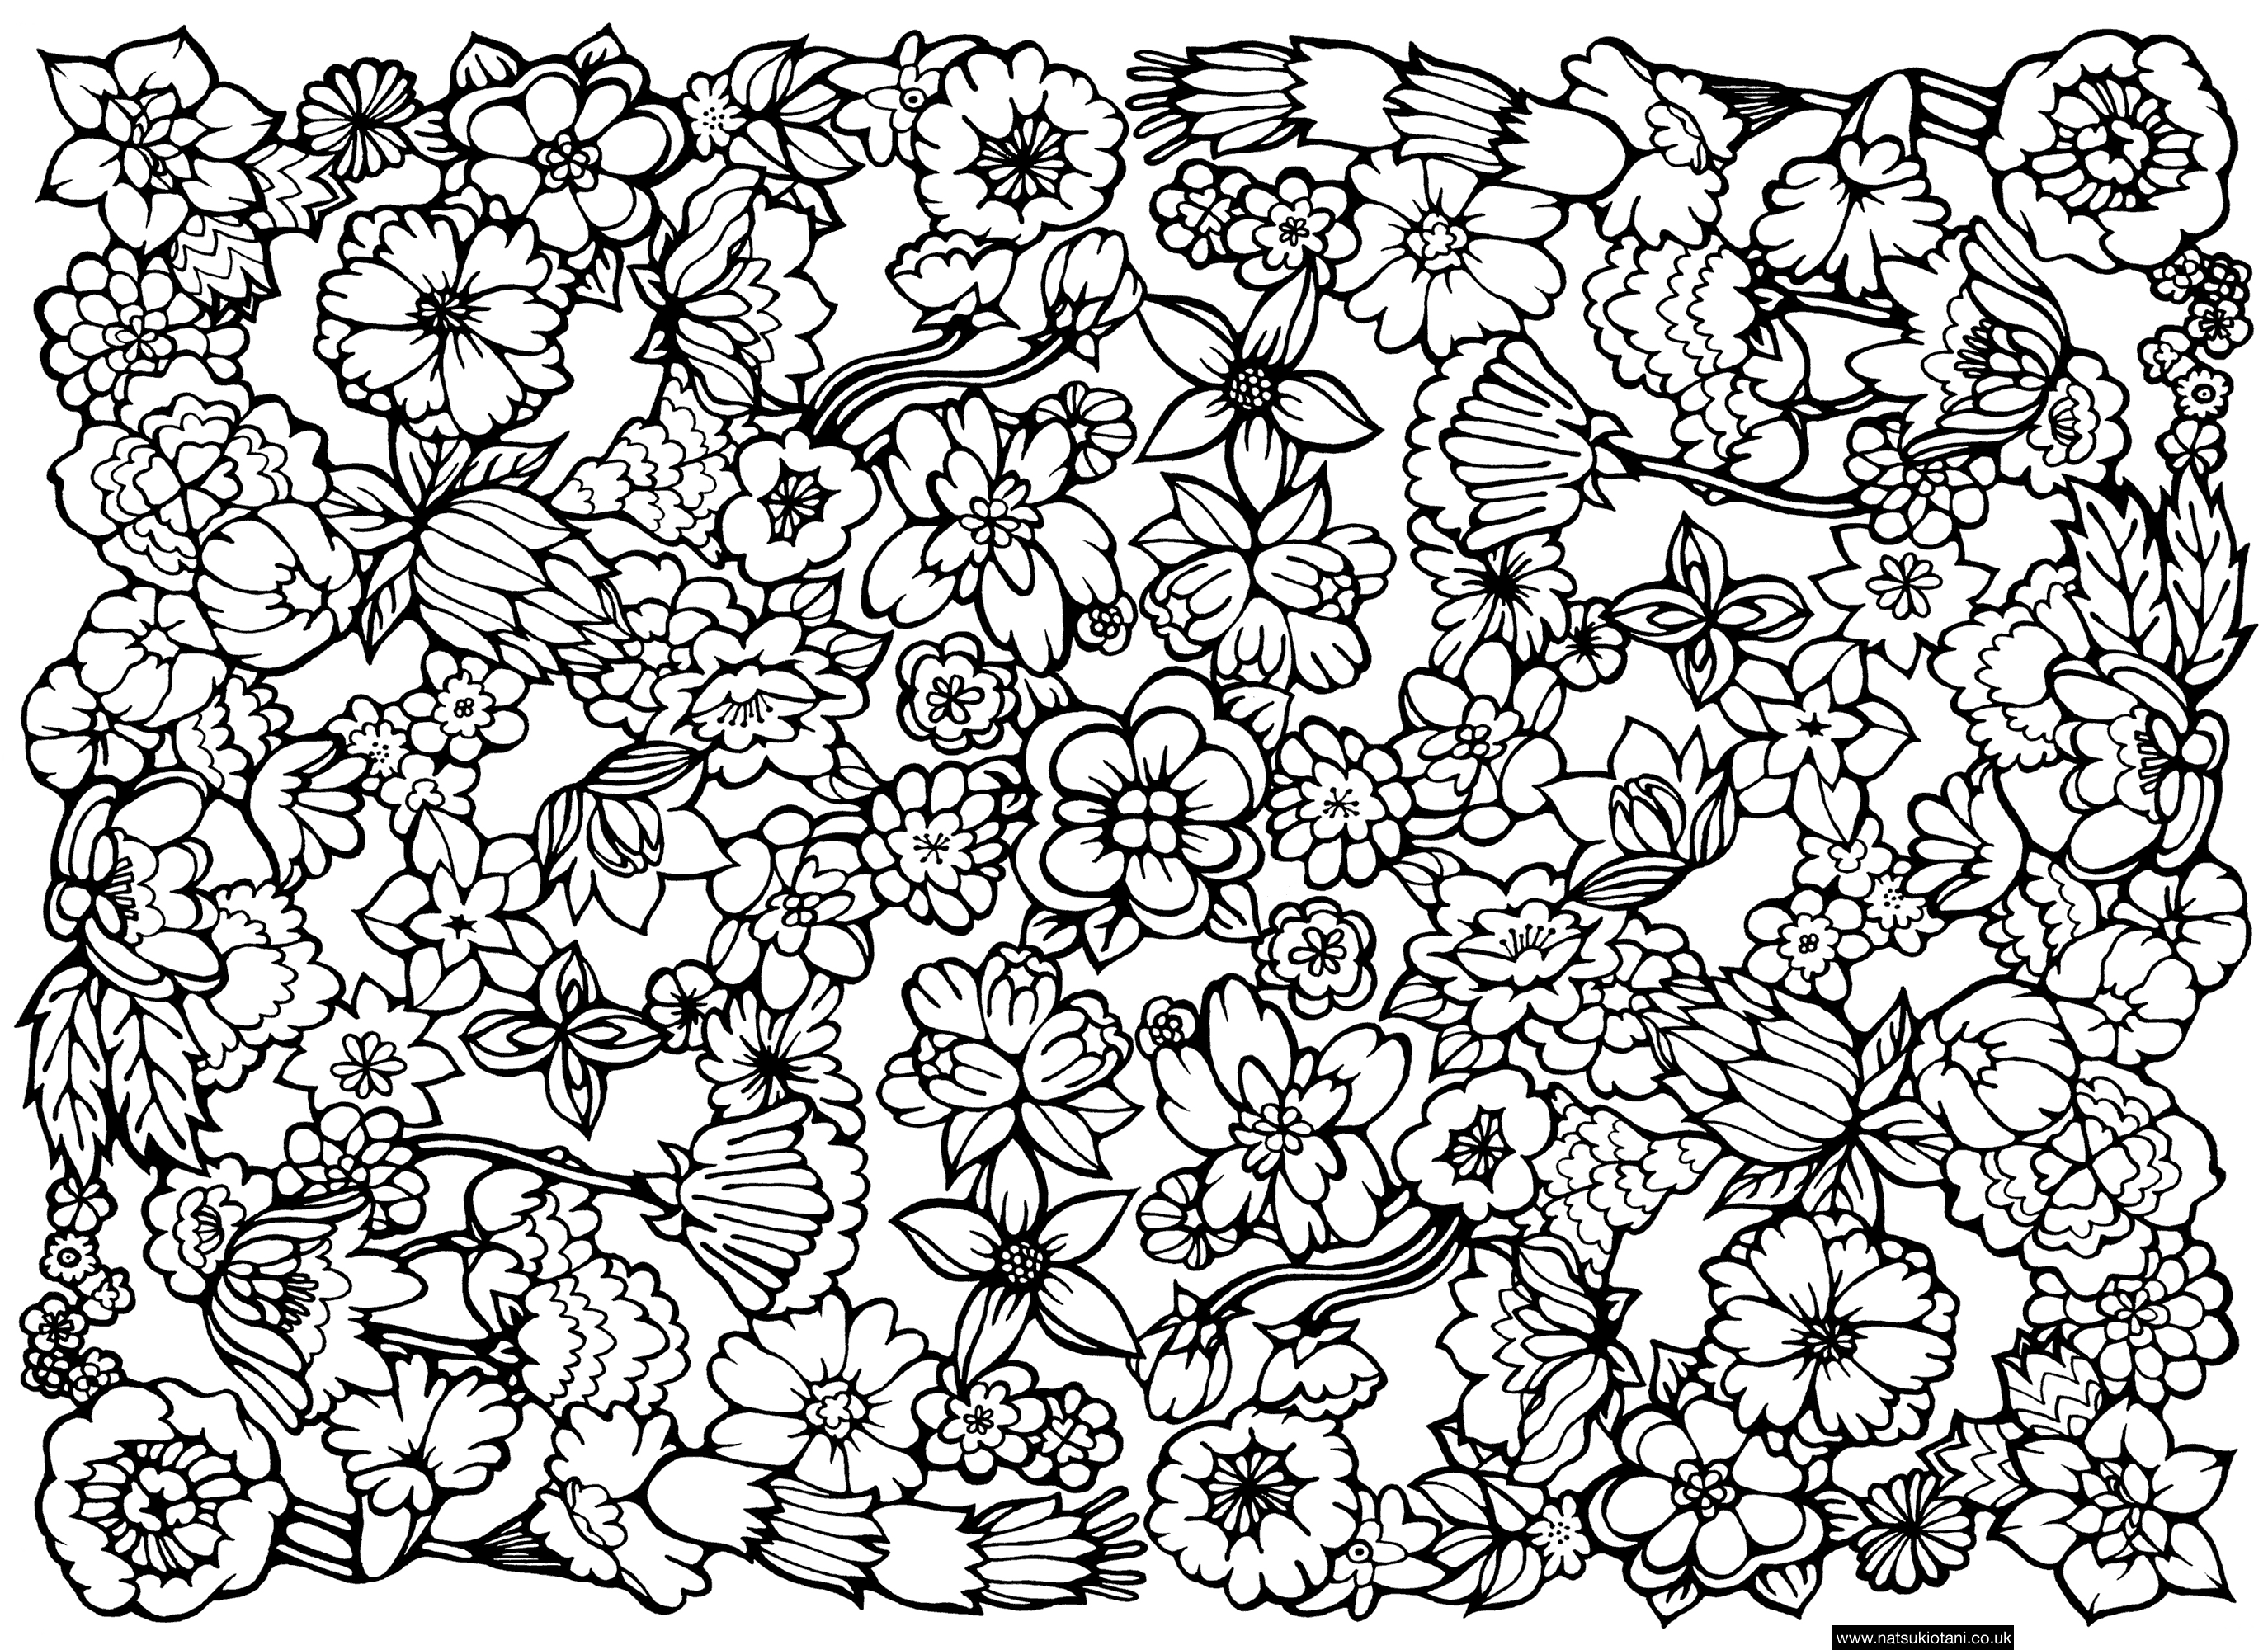 Abstract flower coloring pages - Flowers Coloring Page